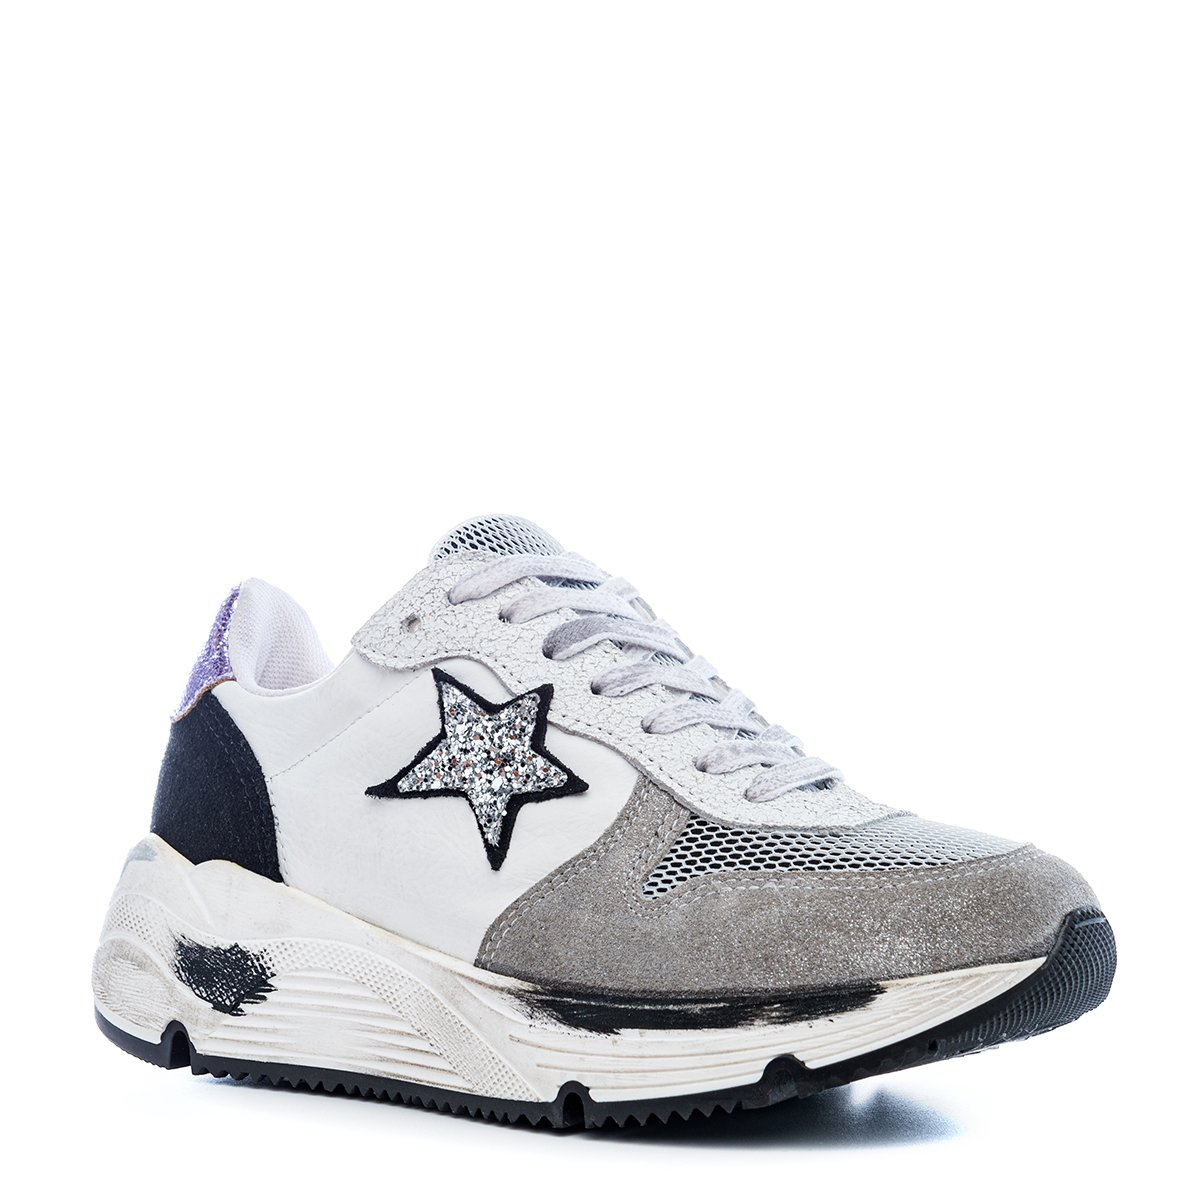 scarpe Sneakers donna Run Bianco Silver Grey Arish pelle stella glitter alta